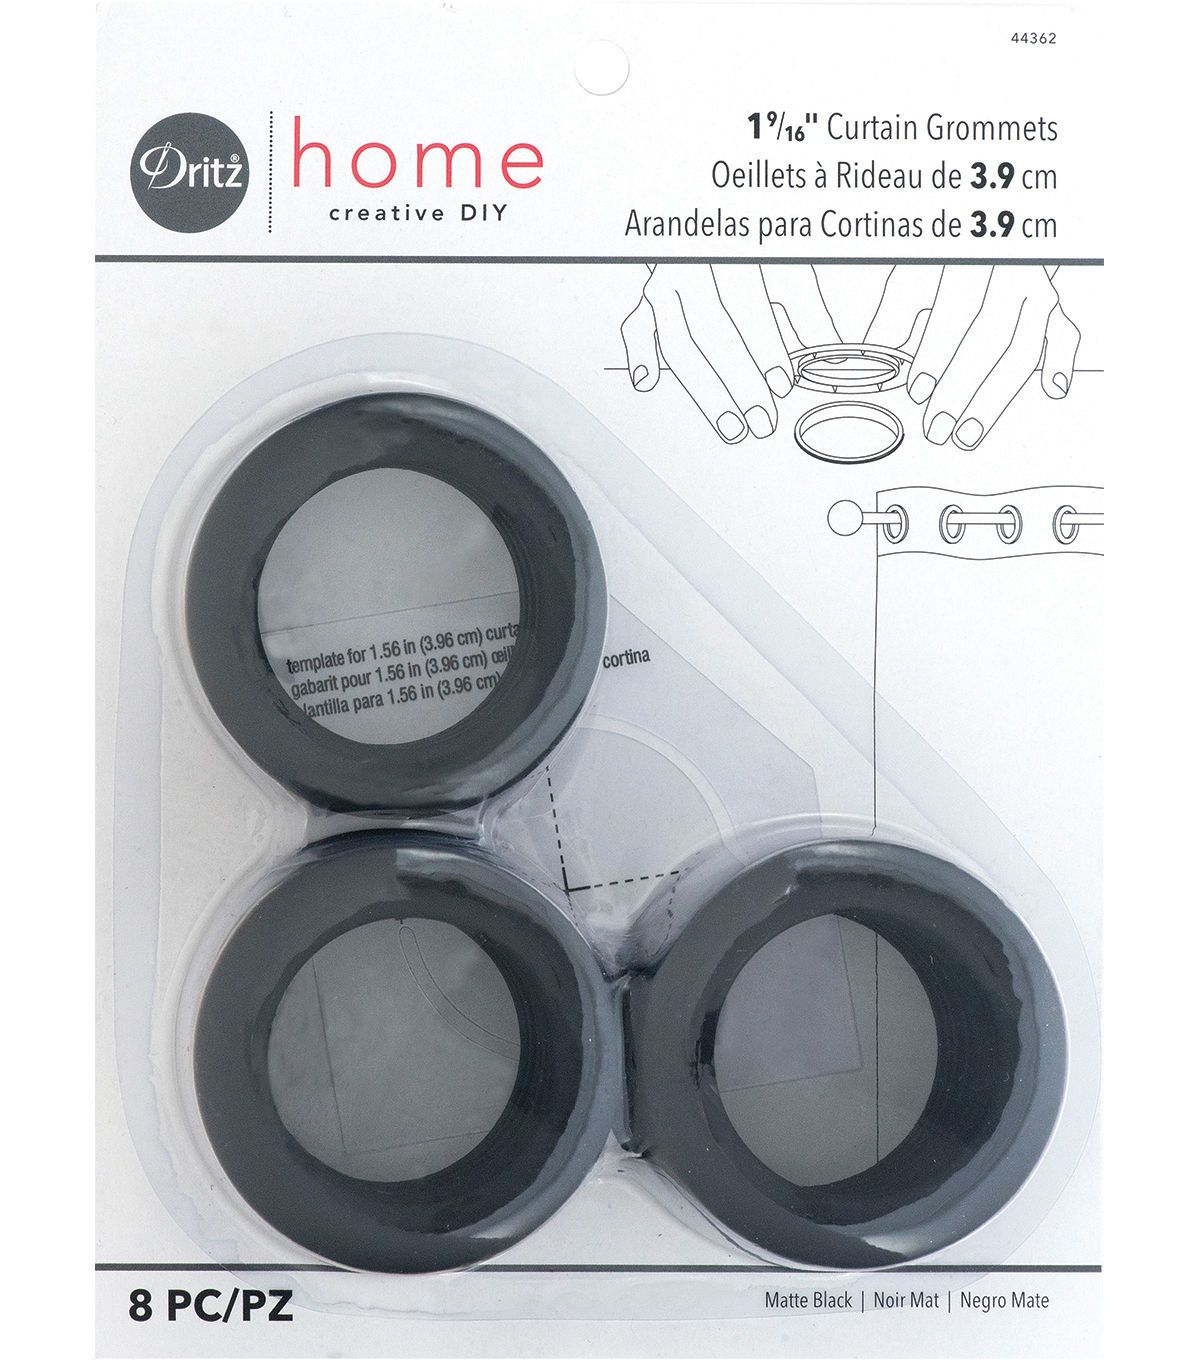 Dritz Home 1 56 Curtain Grommets 8pcs Brass Grommet Curtains